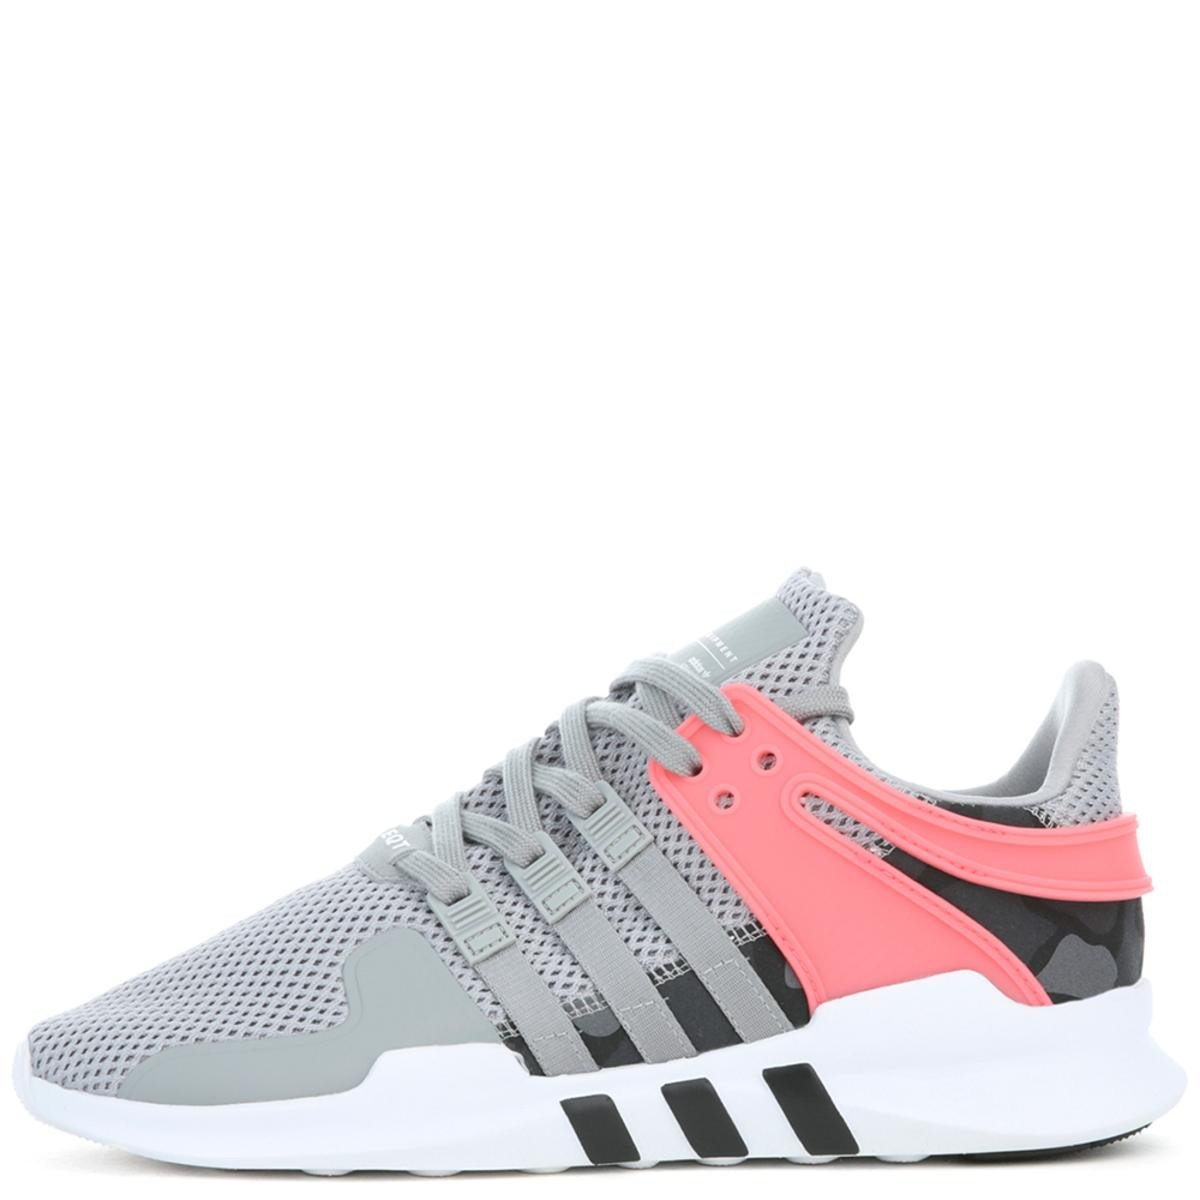 Men's EQT Support ADV Sneaker